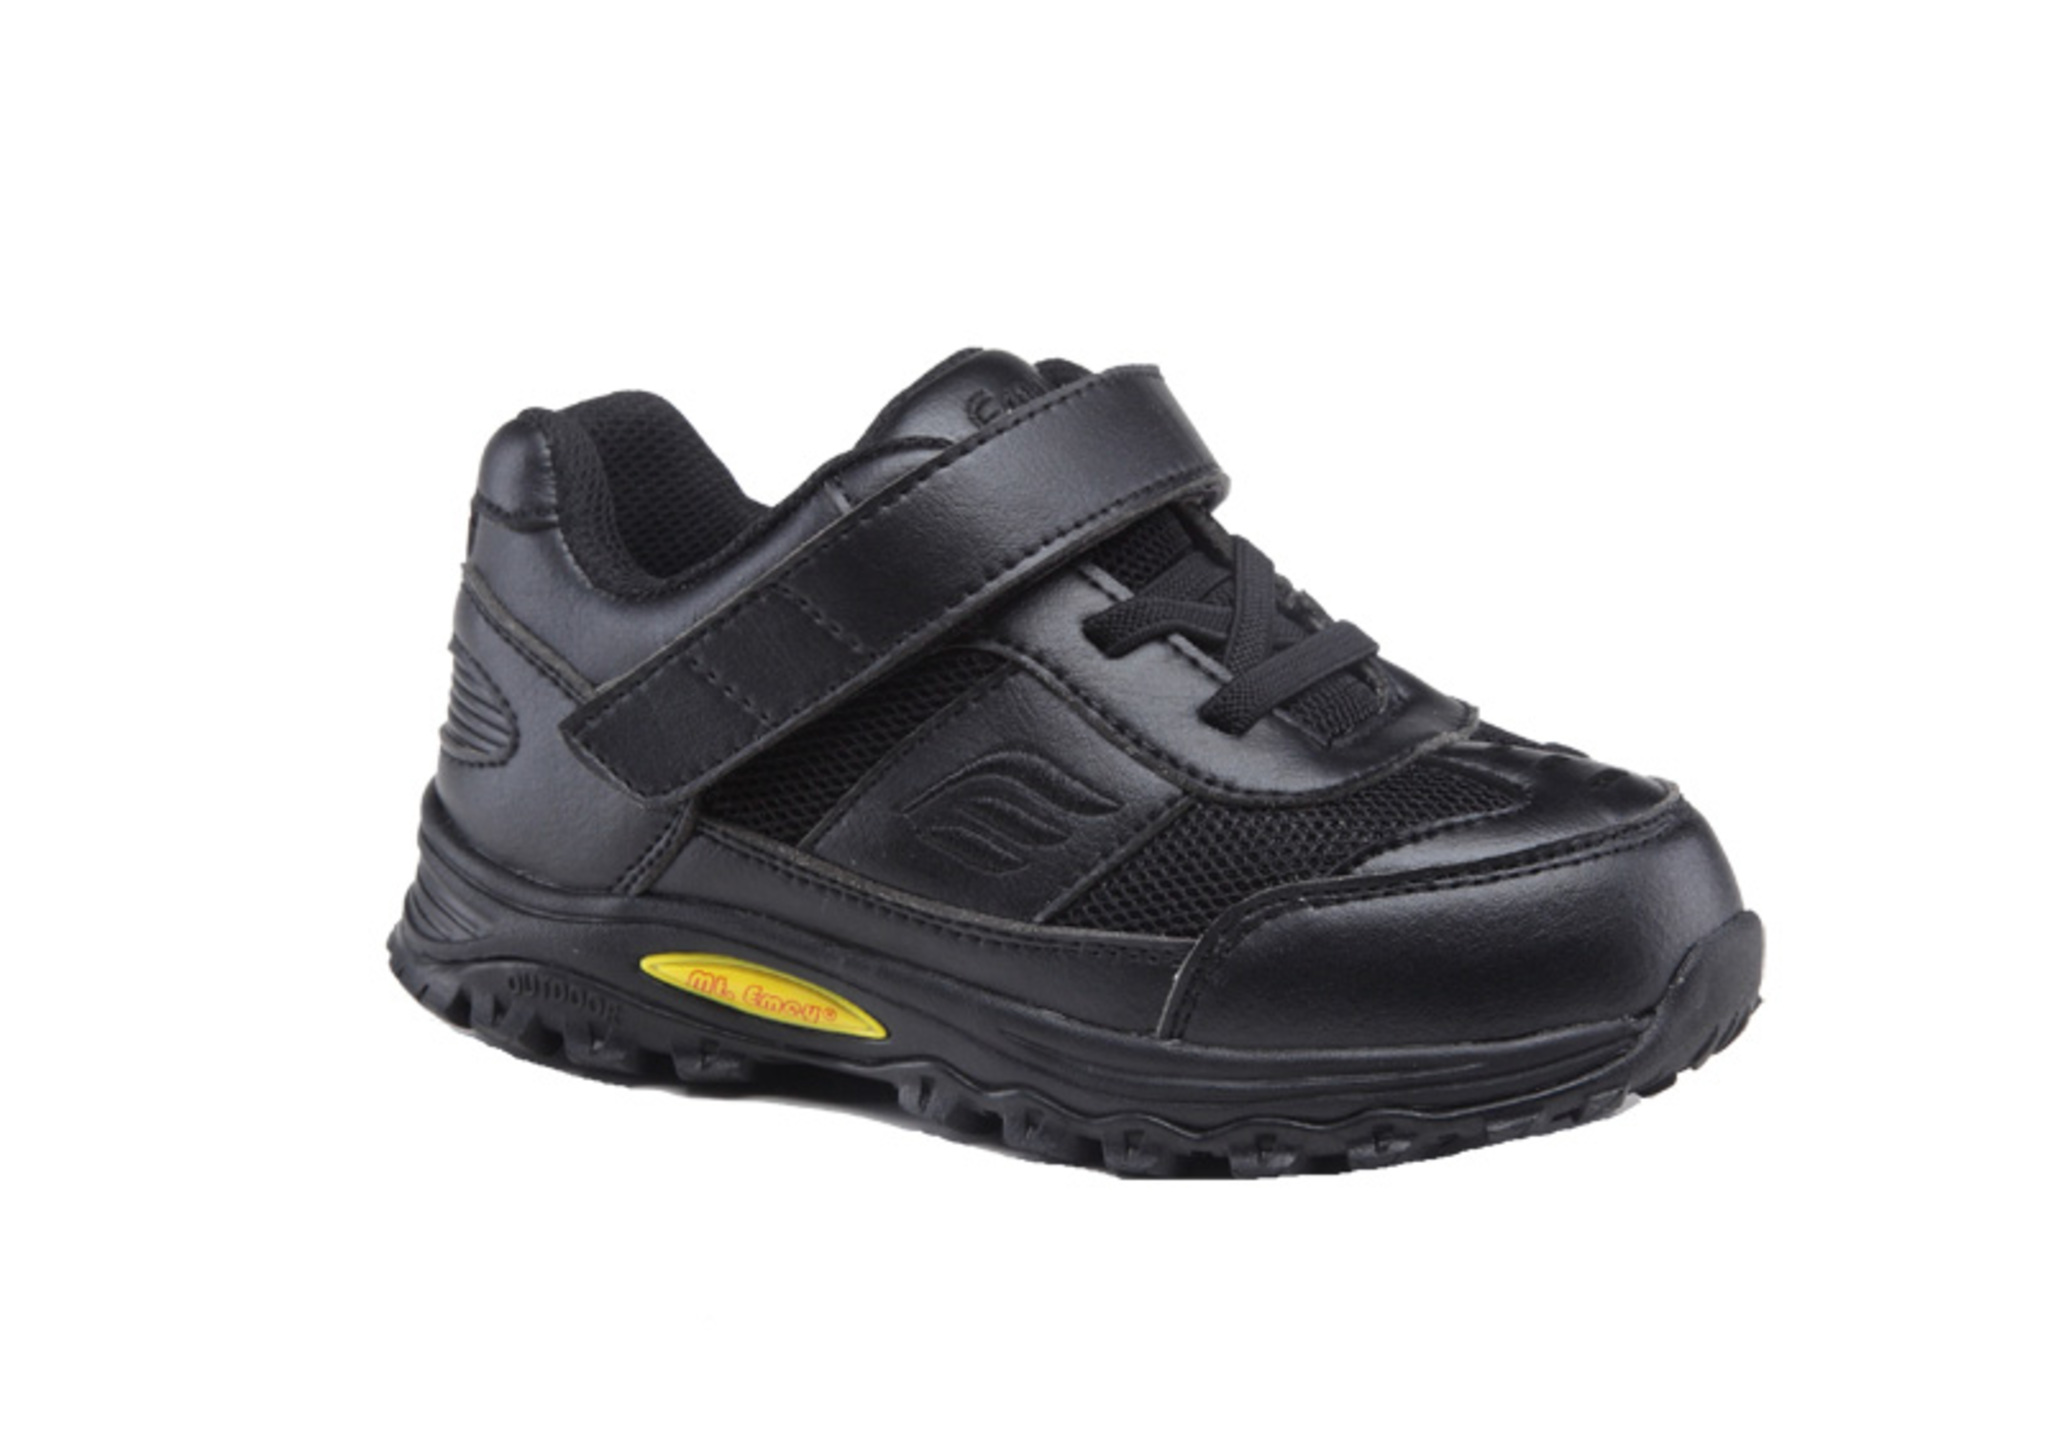 Mt. Emey™ Children's Orthopedic SneakerOrthopedic Shoes For Kids